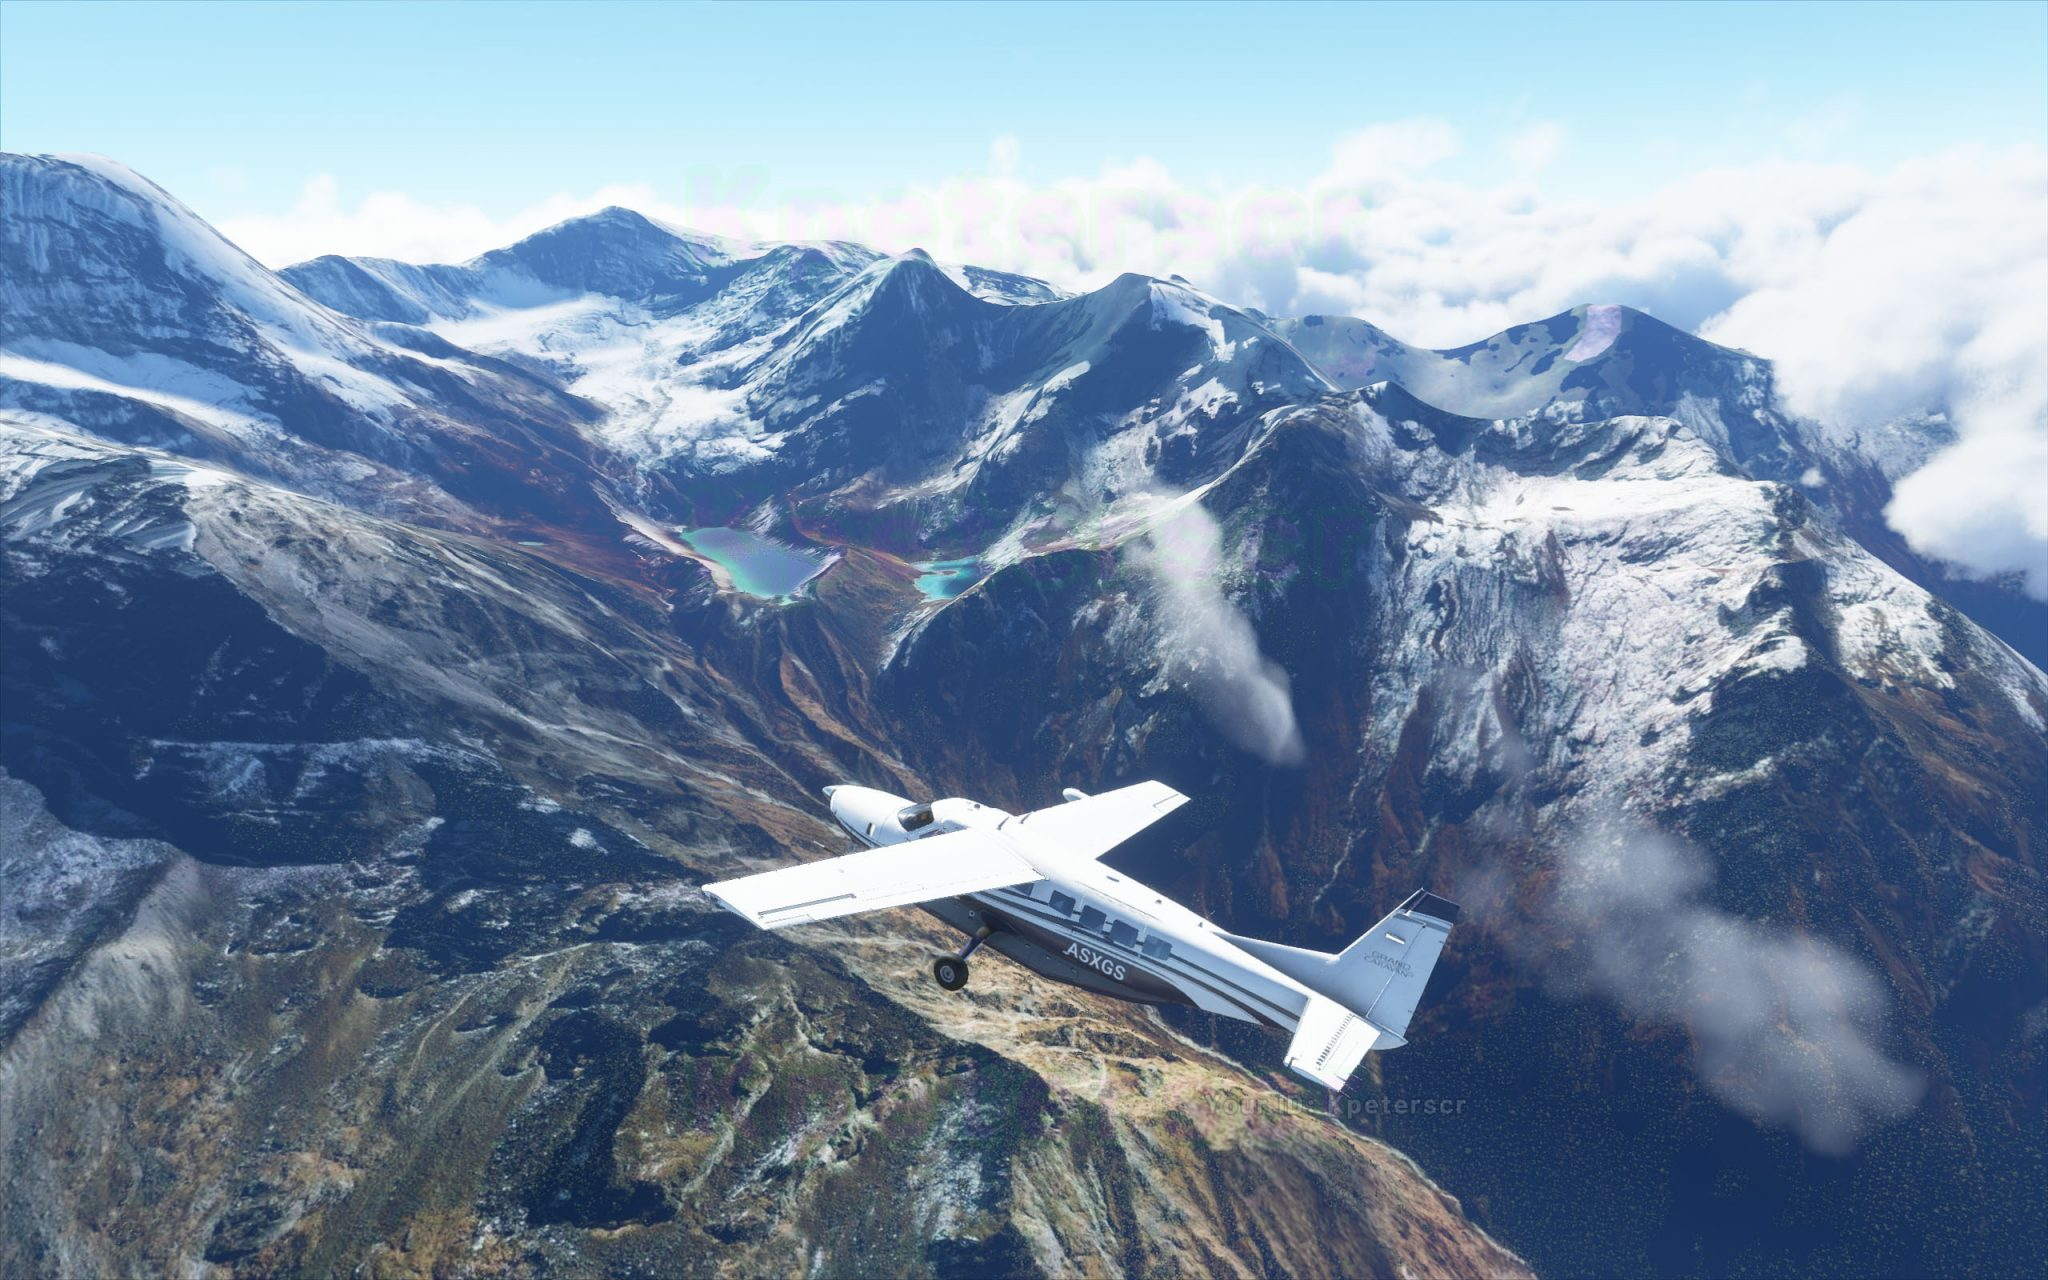 https://msgpwebsites.azureedge.net/fsi/wp-content/uploads/2020/06/Microsoft-Flight-Simulator-Alpha-01-Jun-20-8_37_54-PM-Copy-2048x1280.jpg